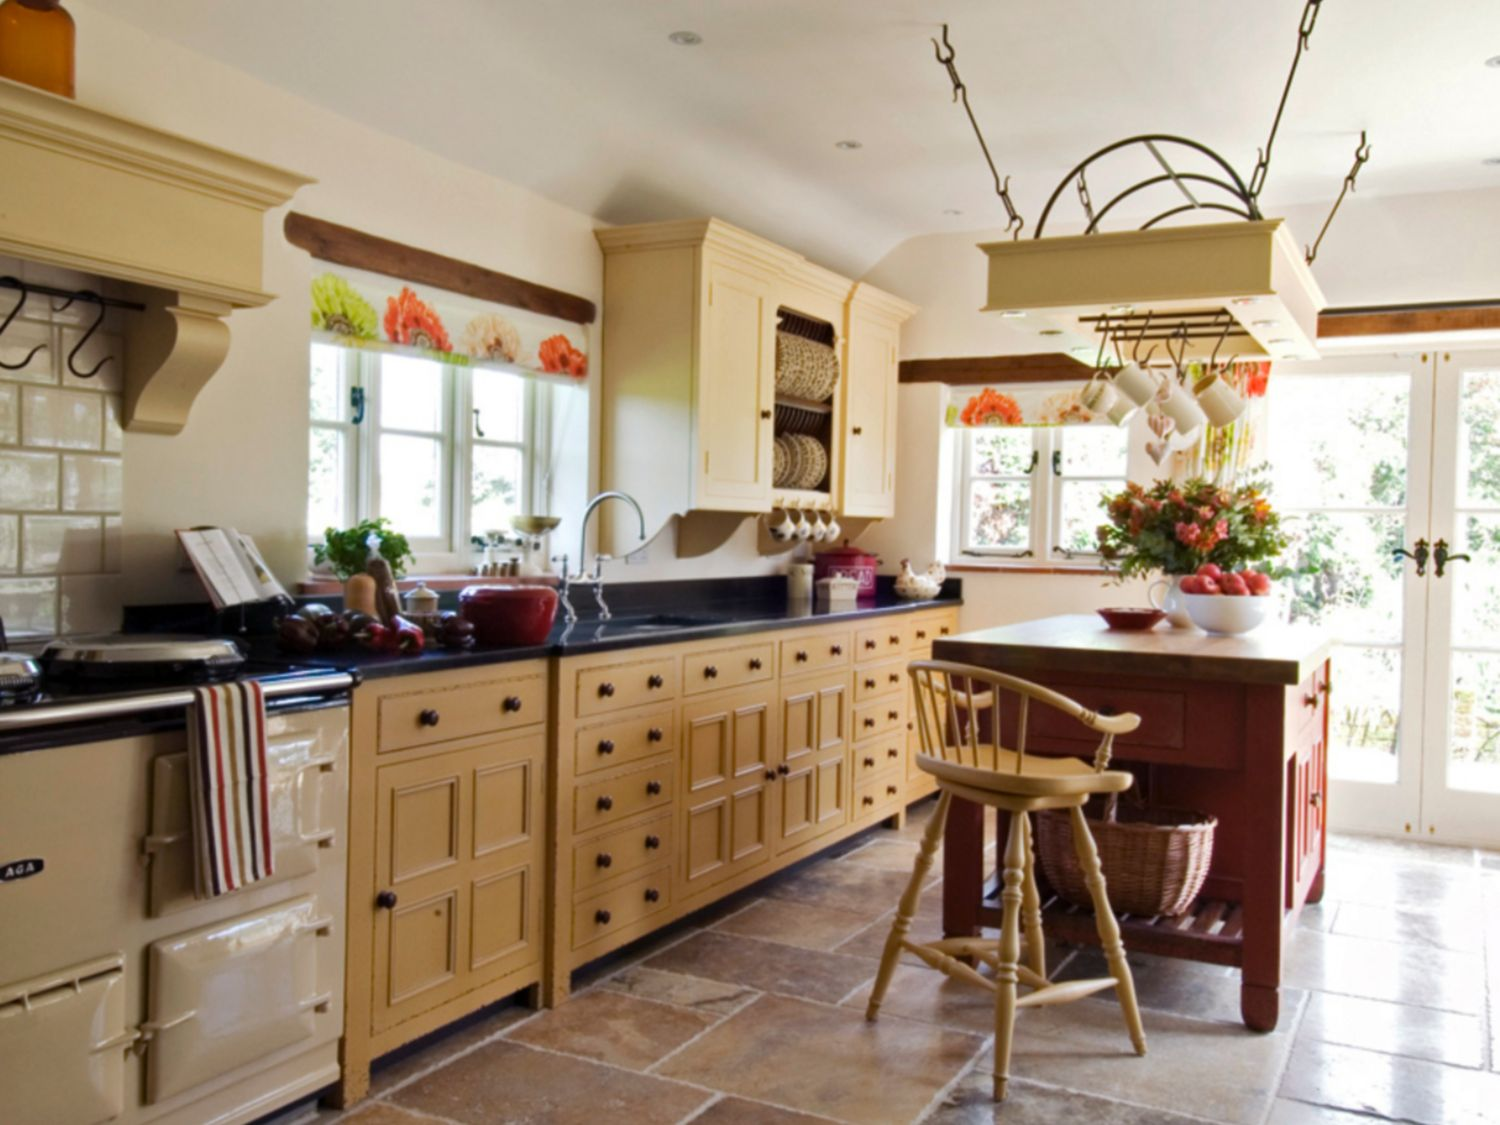 Freestanding Cabinets Offer a Classic Kitchen Look